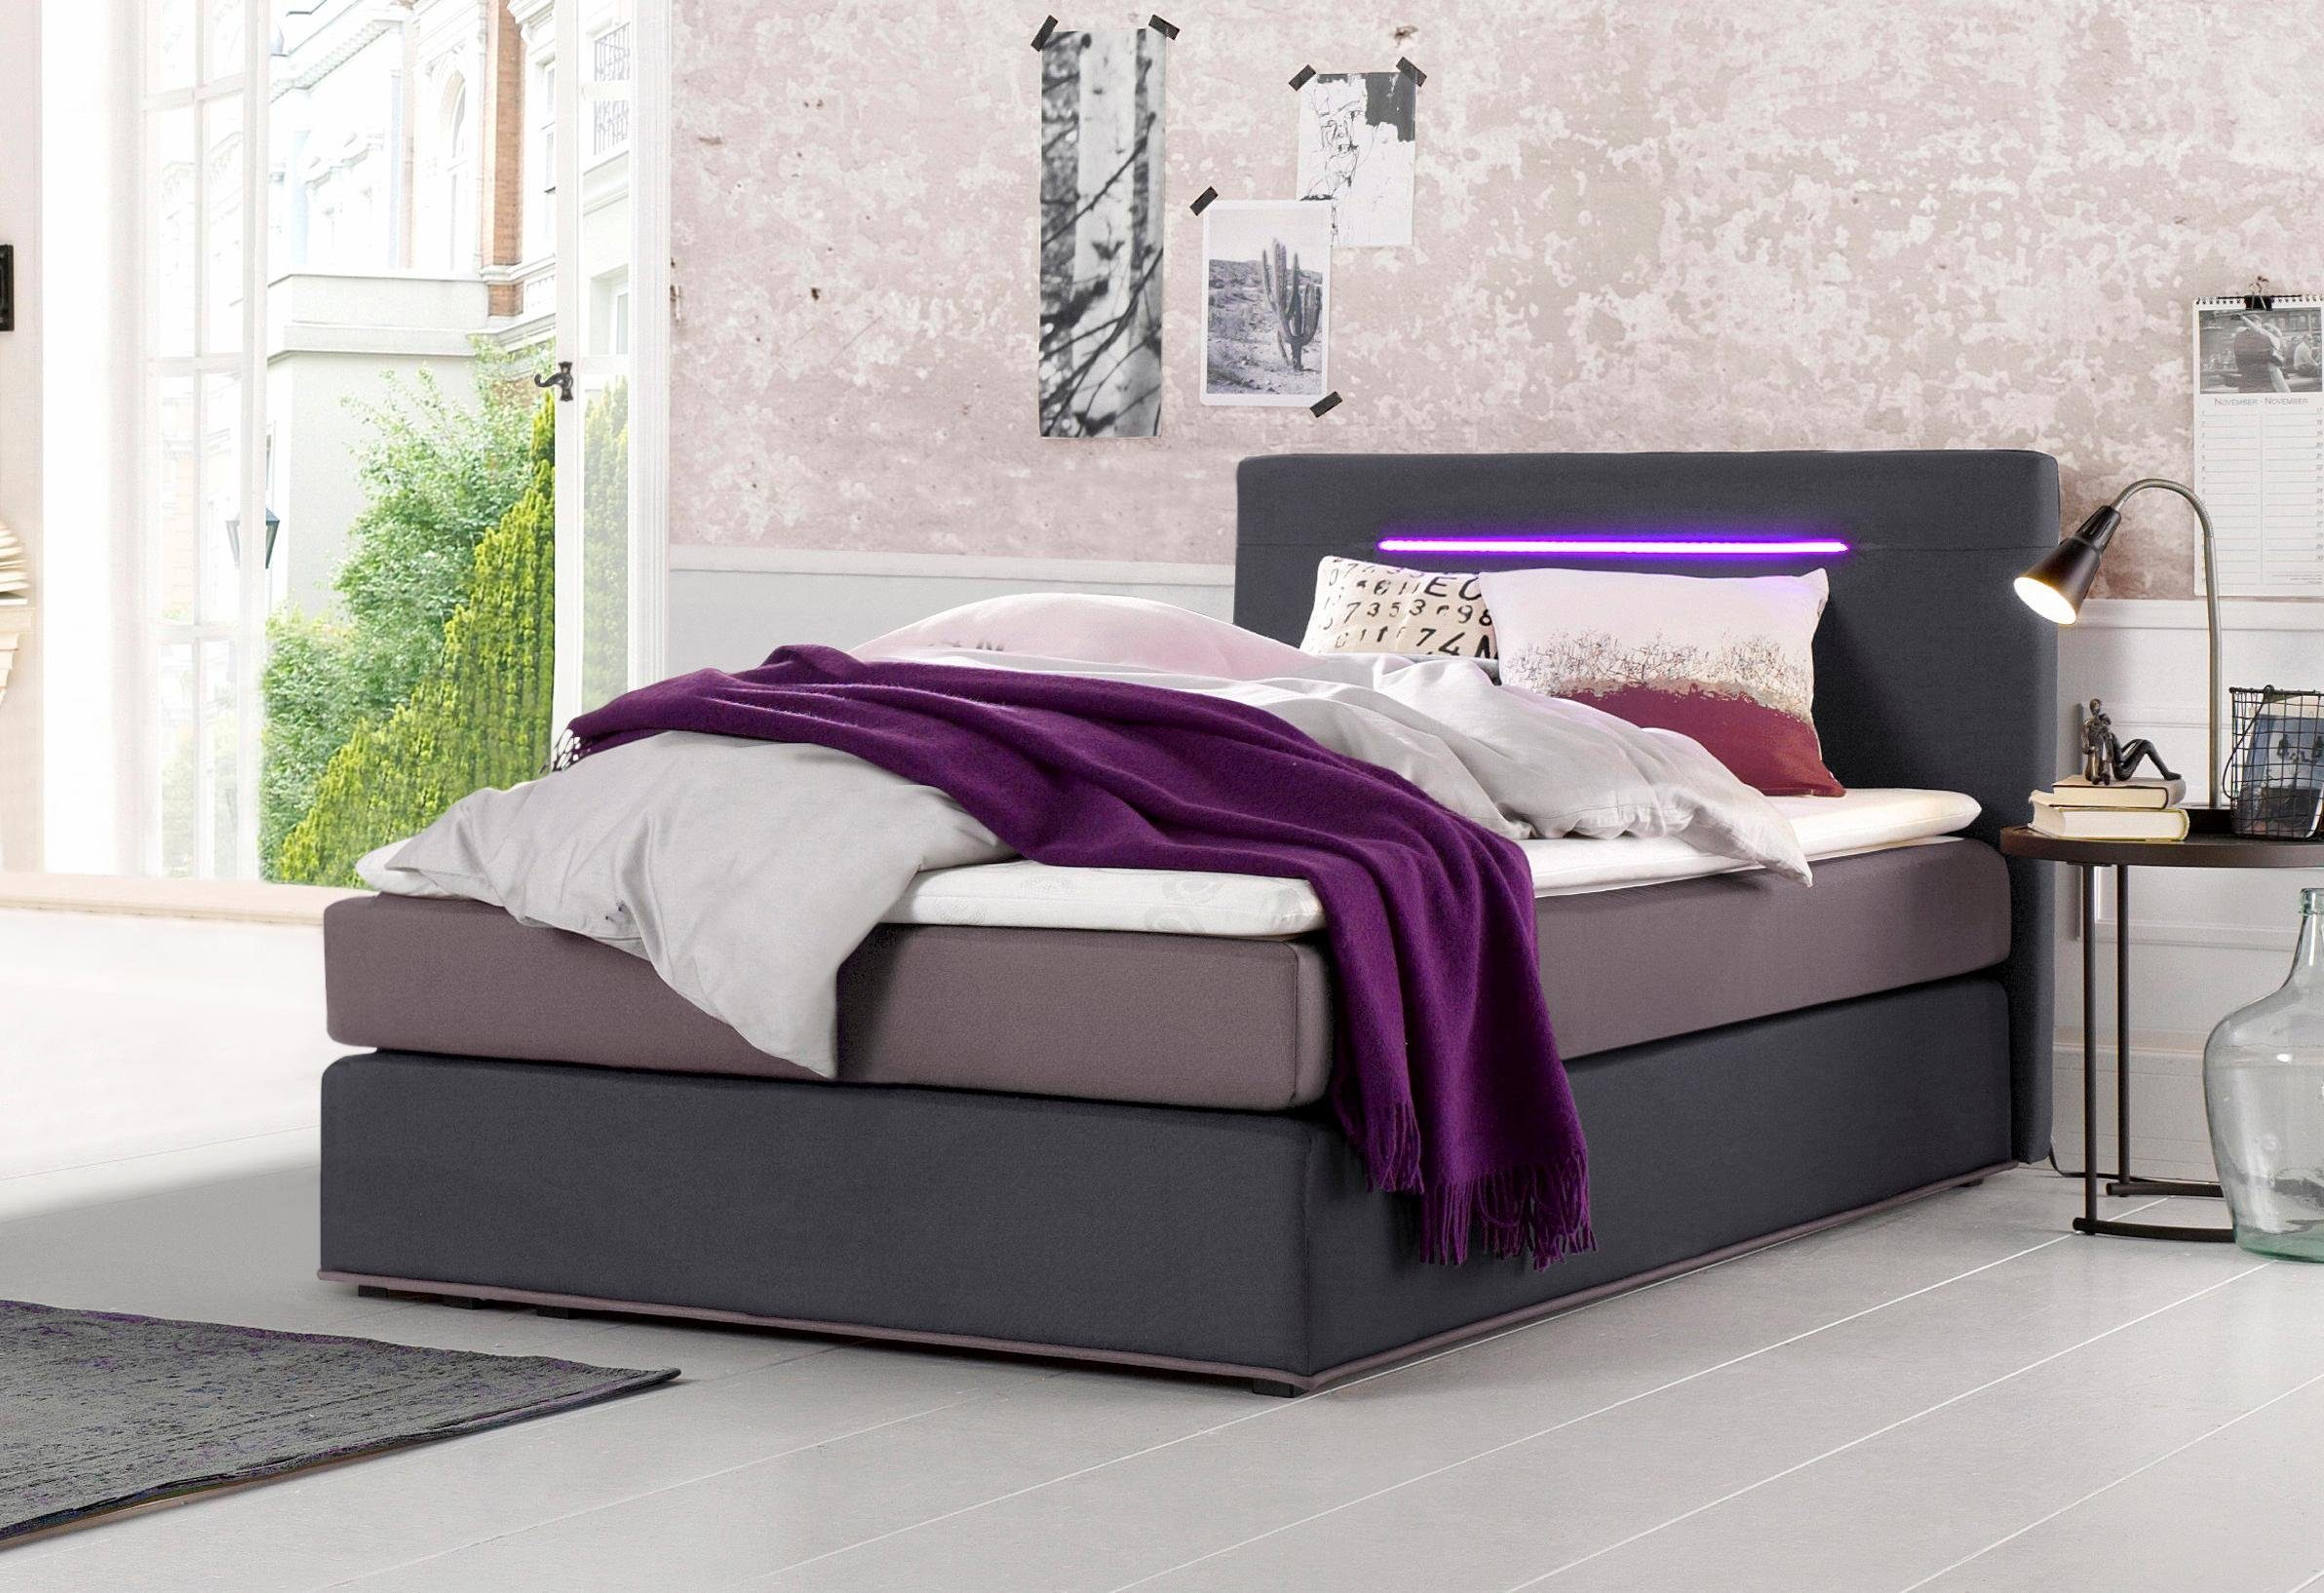 Collection Ab Boxspringbett Inkl Led Beleuchtung Mit Farbwechsel